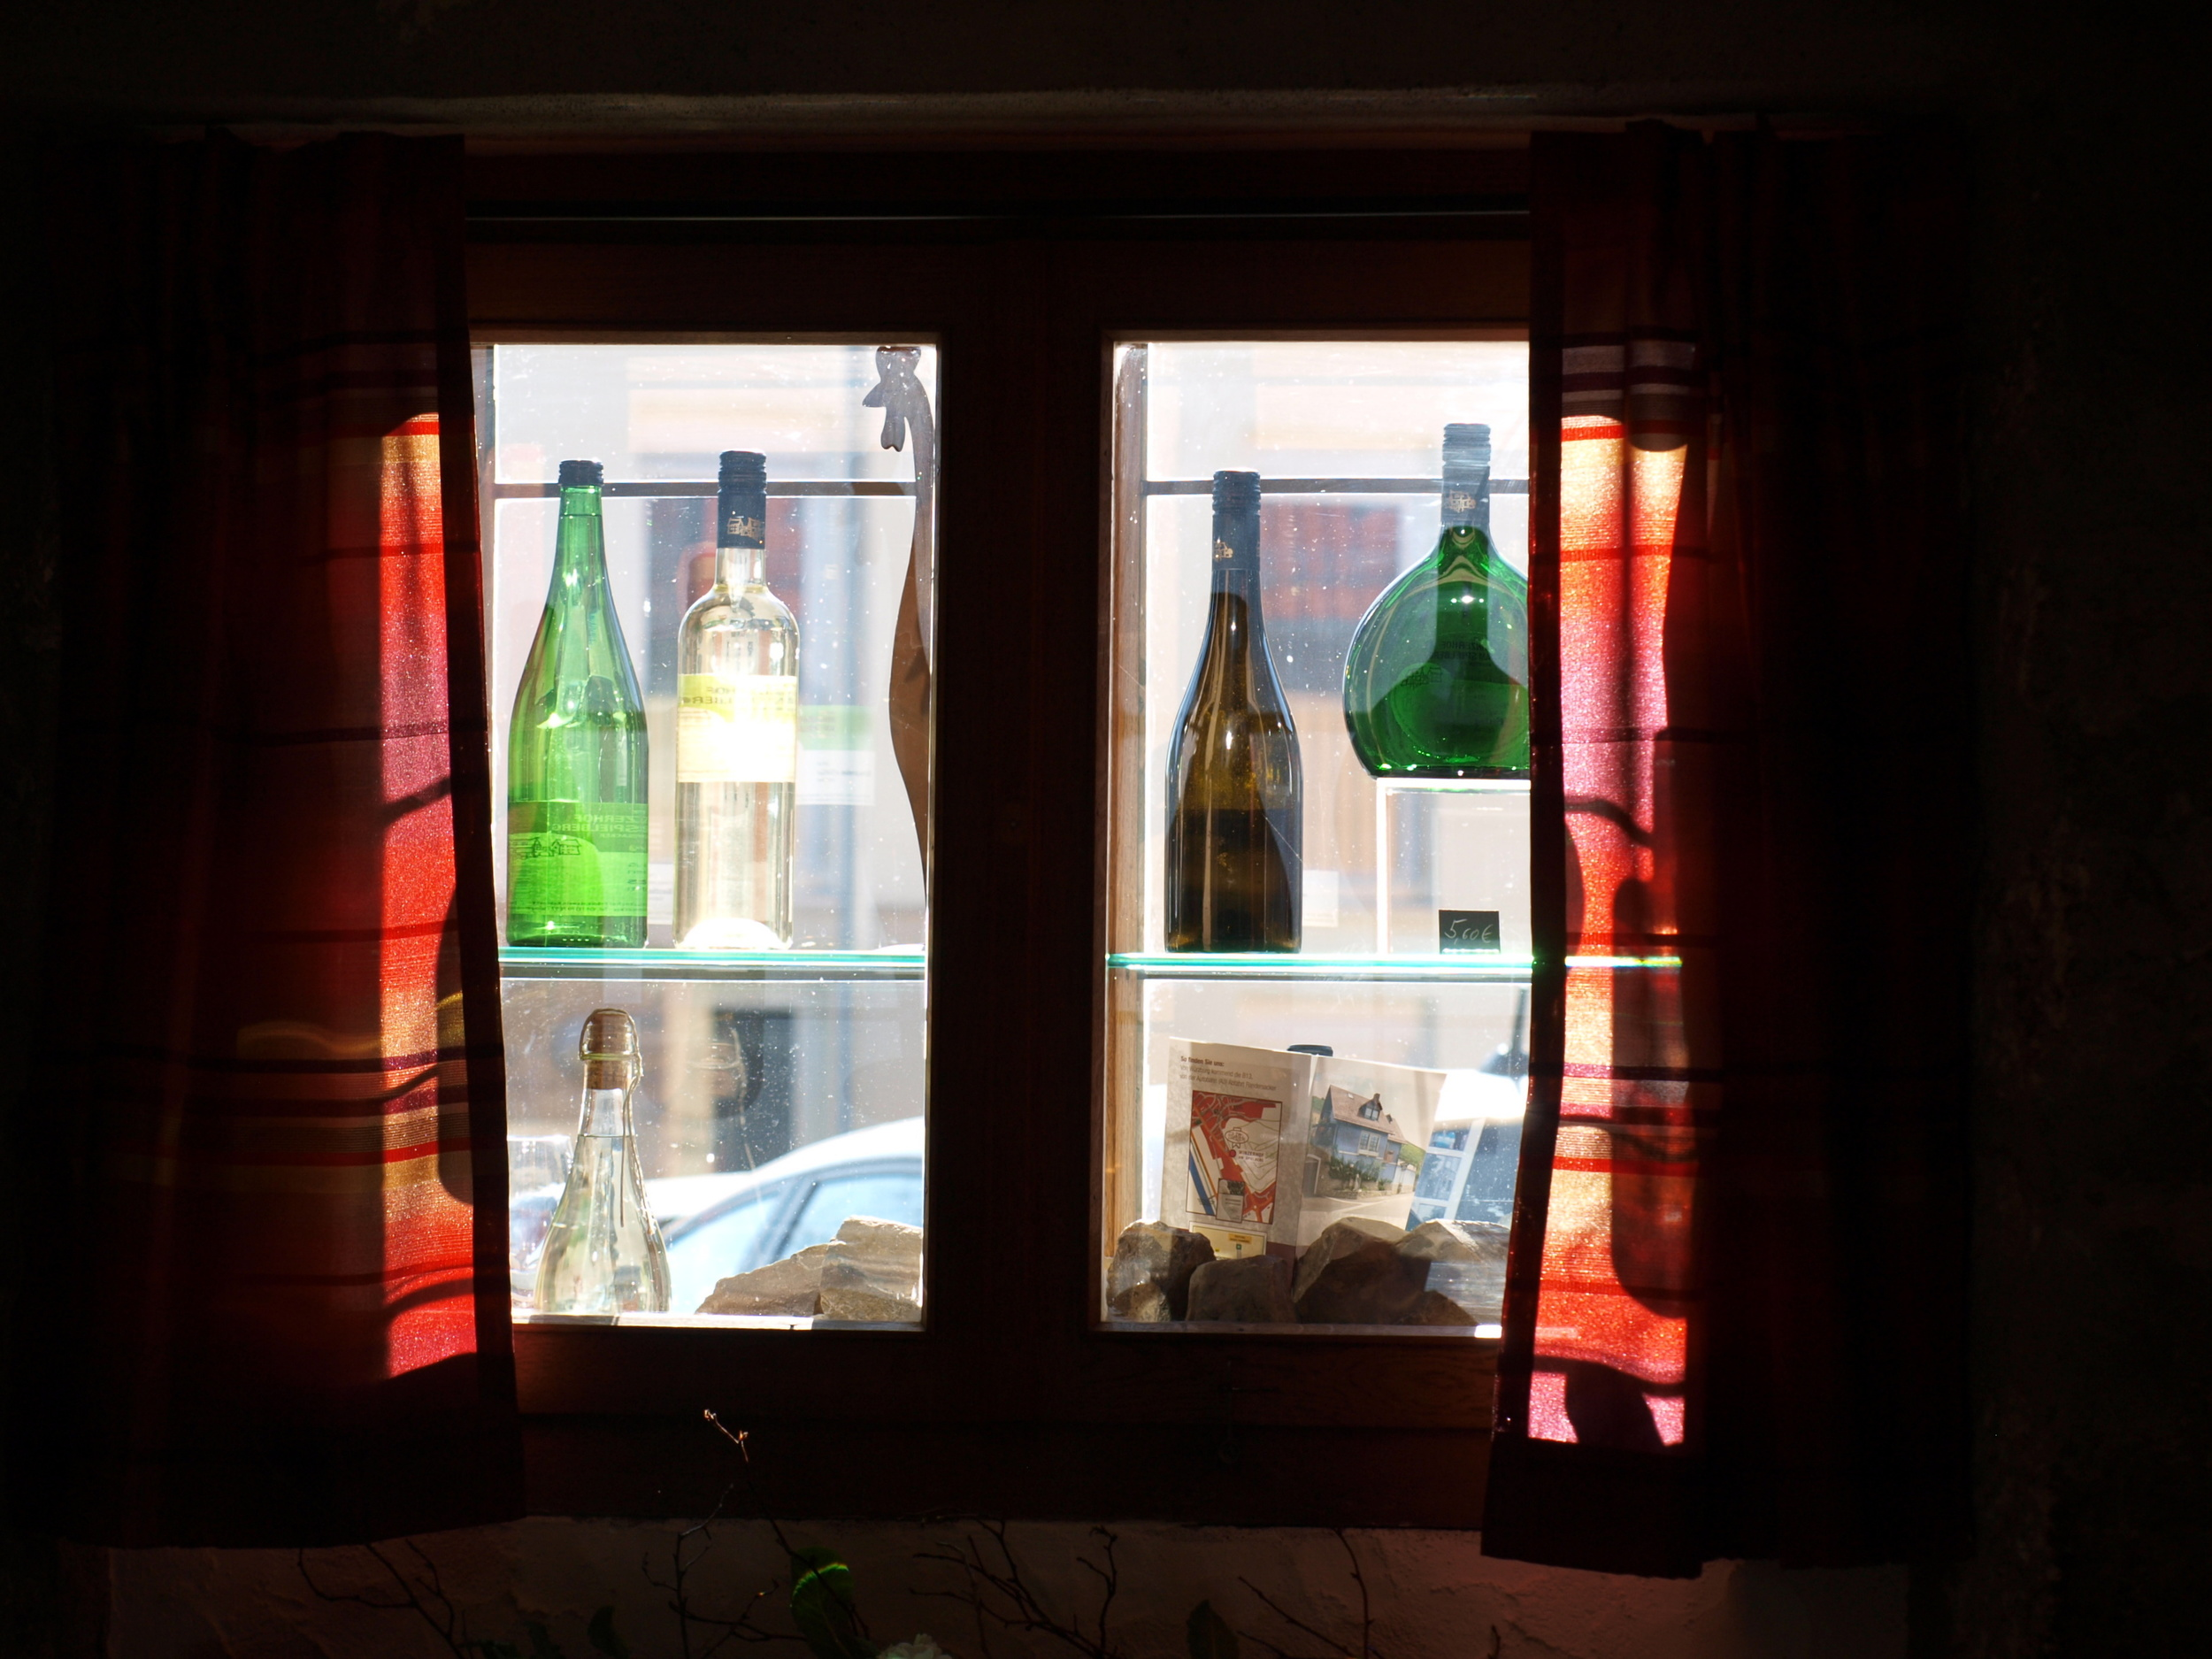 Randersacker-Seasonal wine tavern-window-looking out at the courtyard.jpg